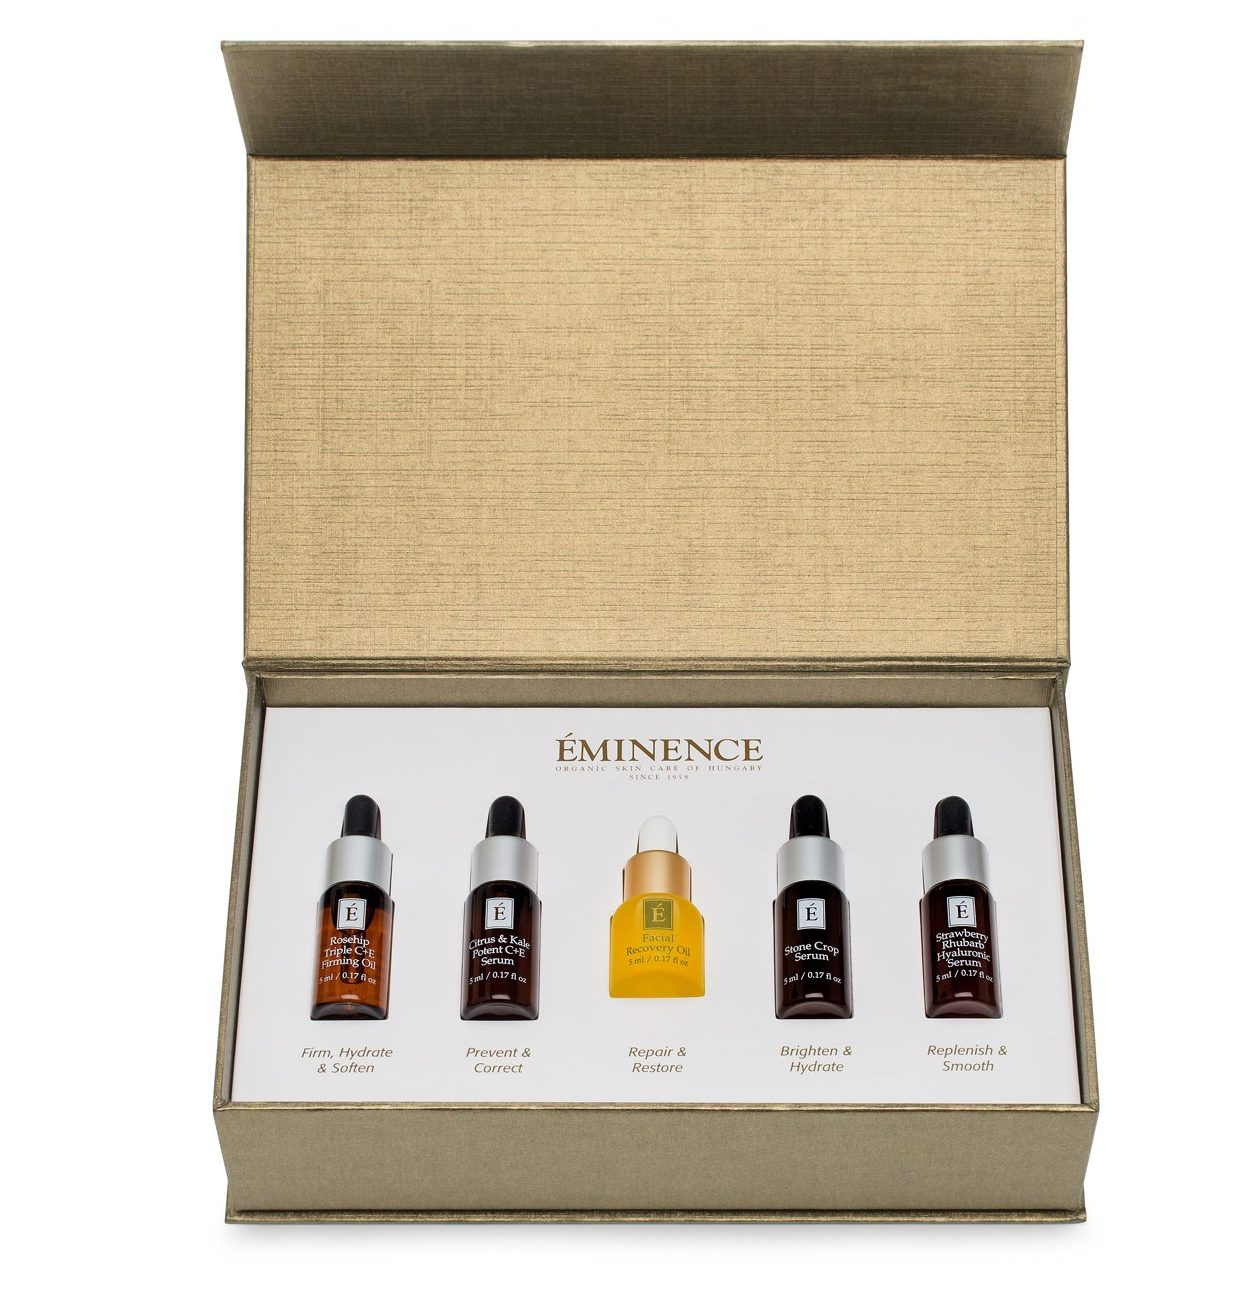 2000984-eminence-oils-_-serums-signature-series-discovery-set_2016-10-18_1500x1500